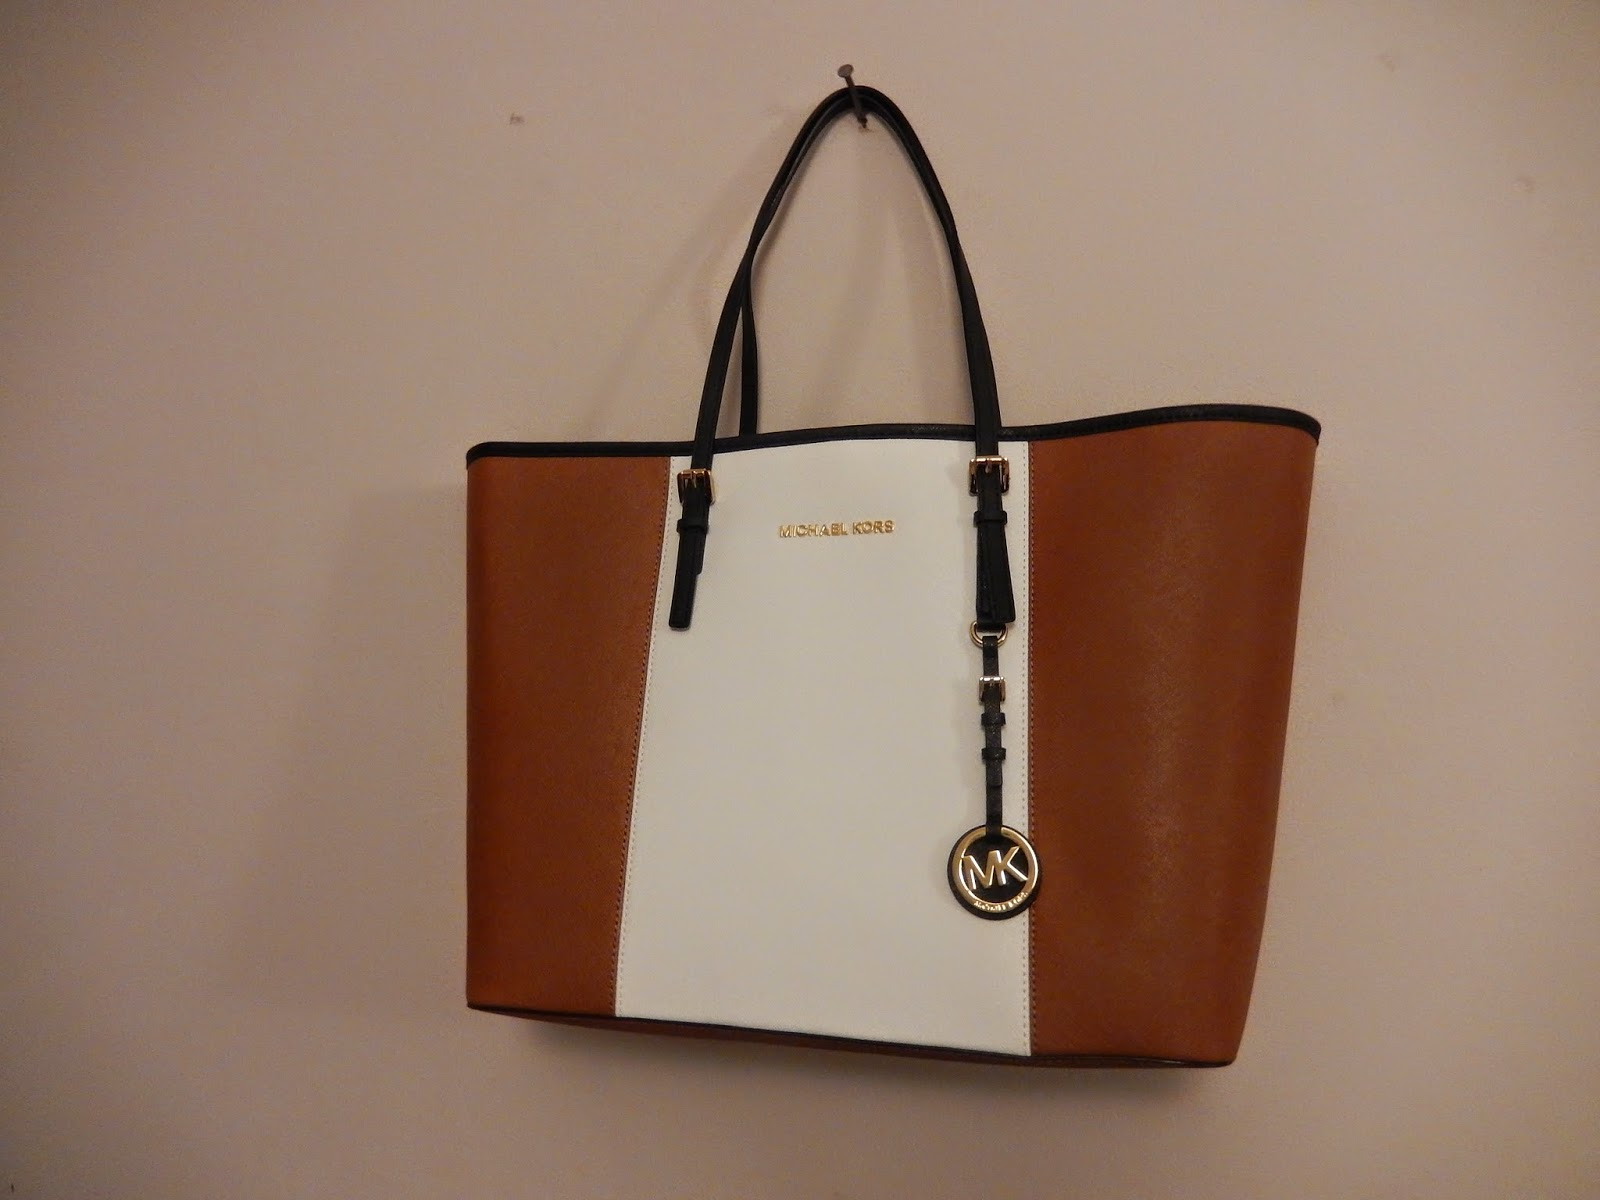 Sammi Jackson - Michael Kors Jet Set Tan Striped Leather Tote Review